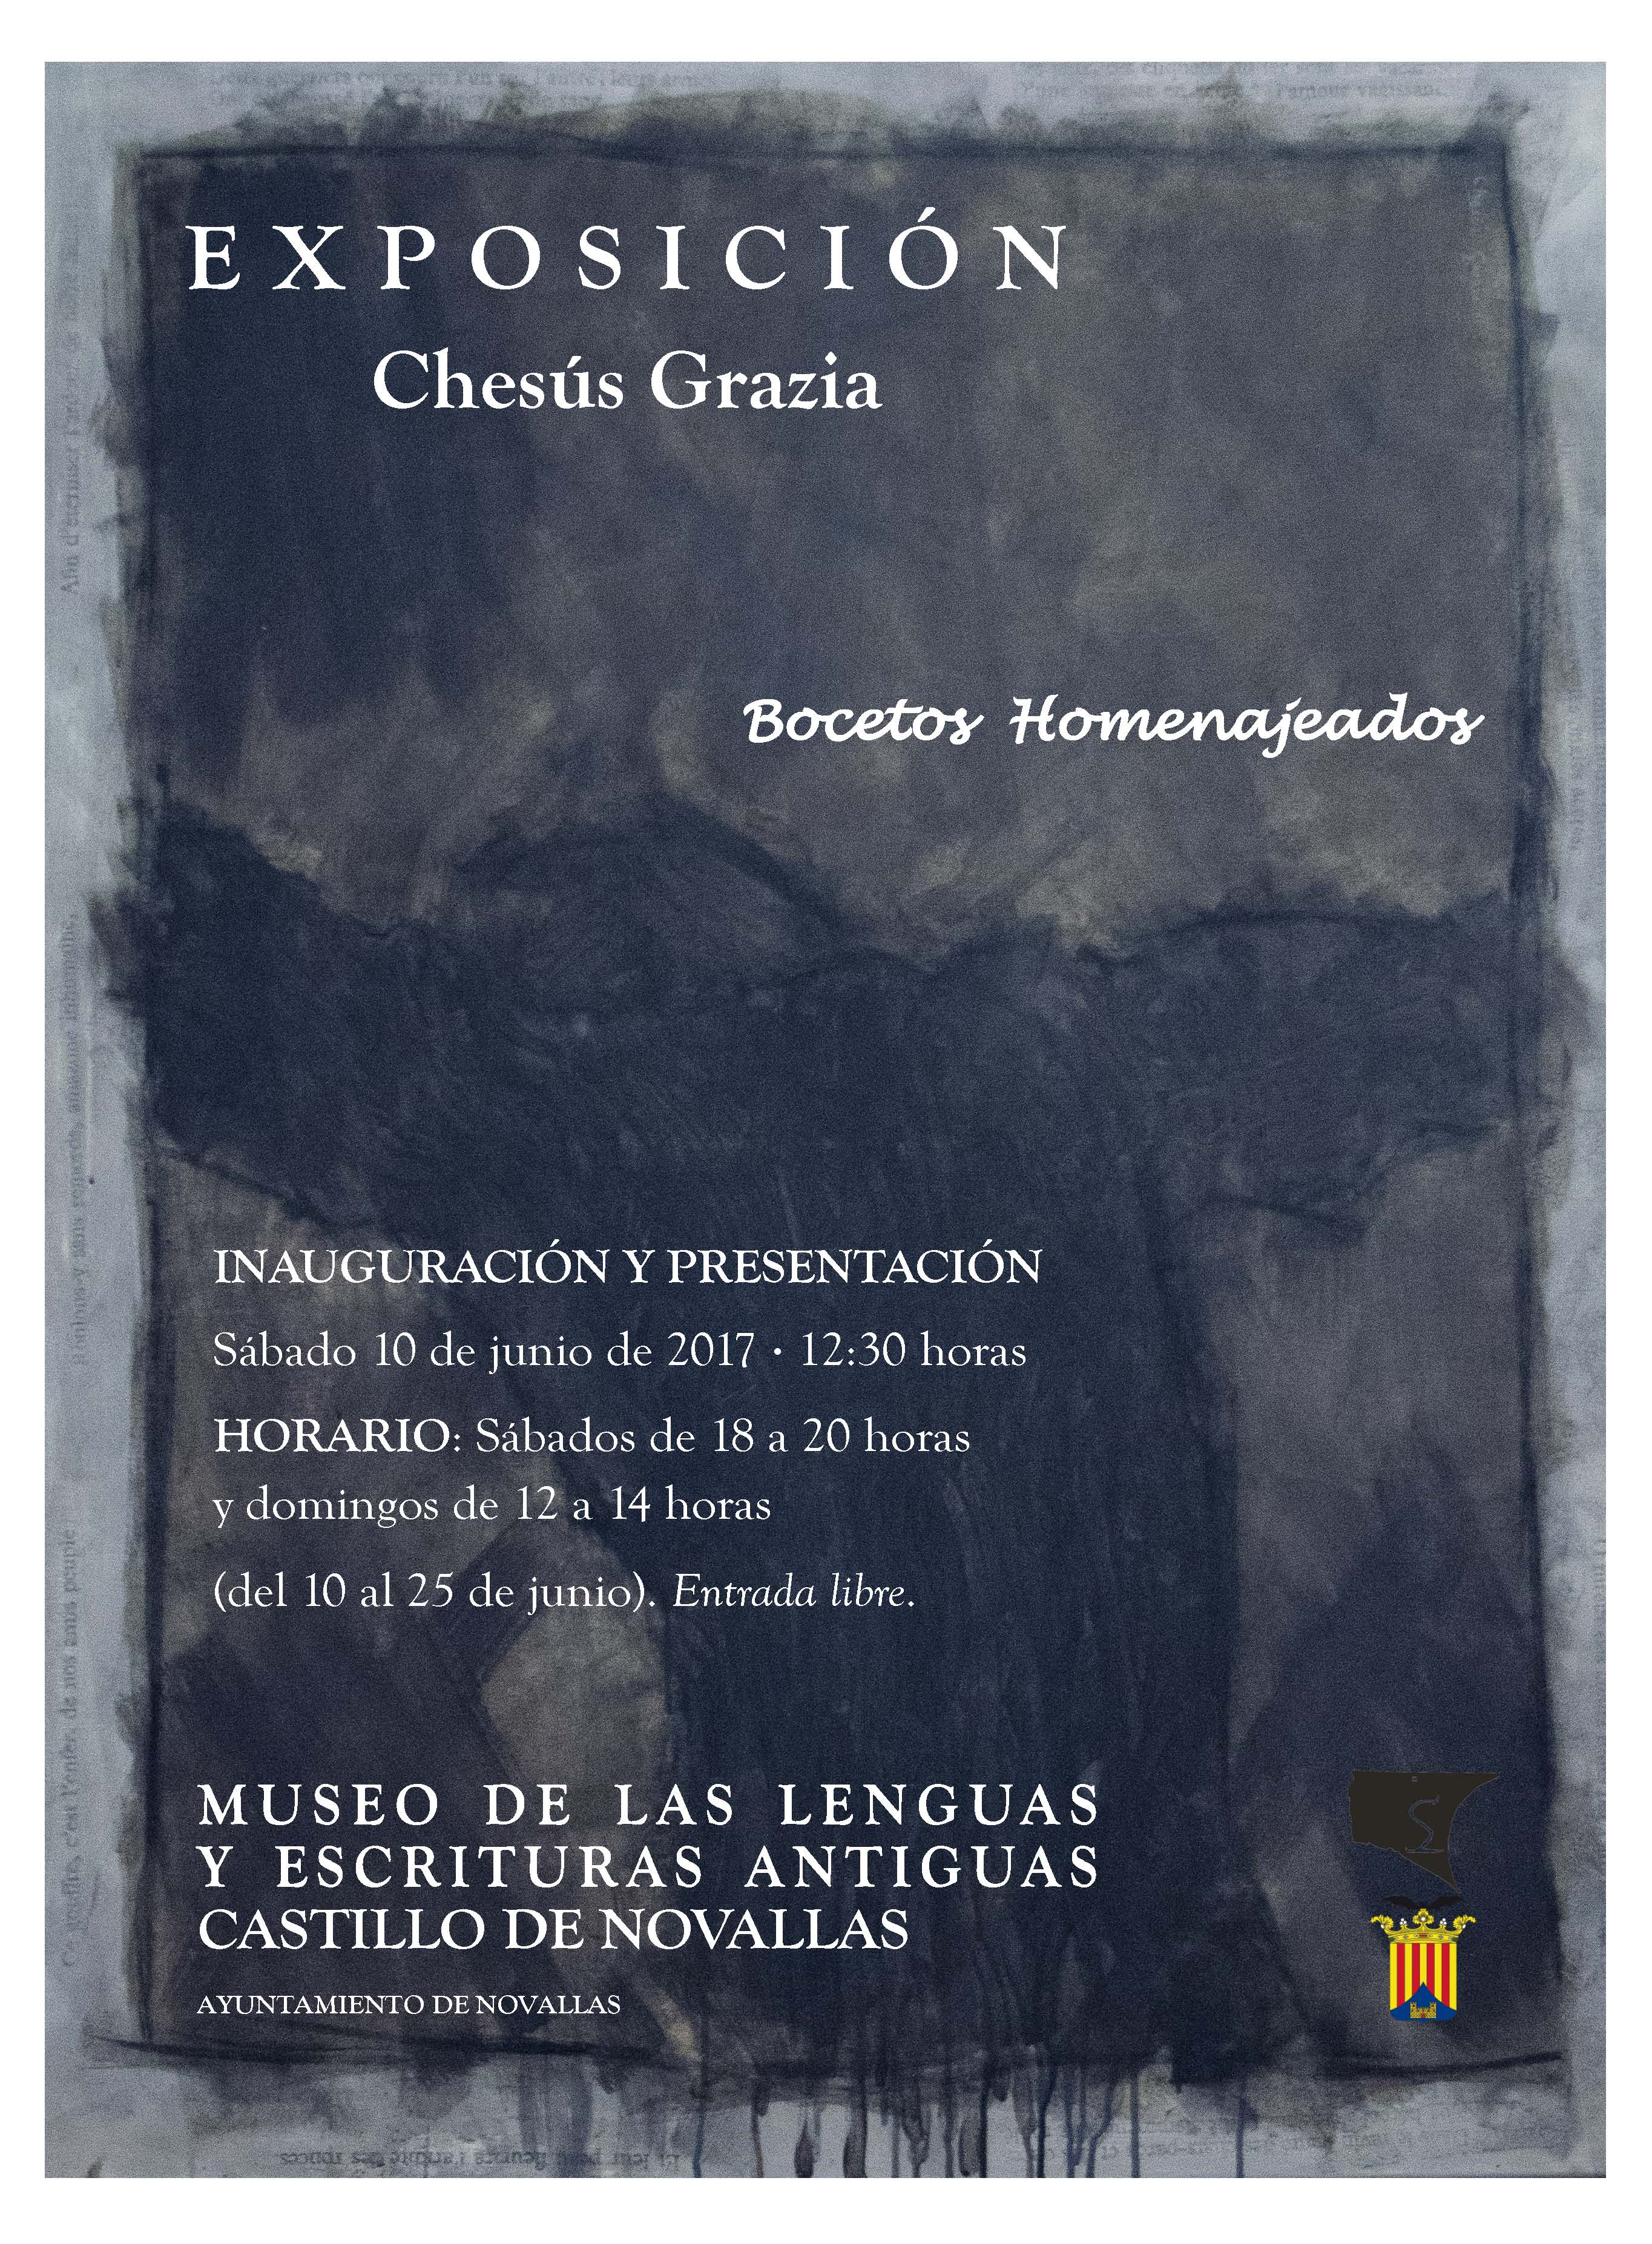 20170530 Chesus GraziaV2 cartel